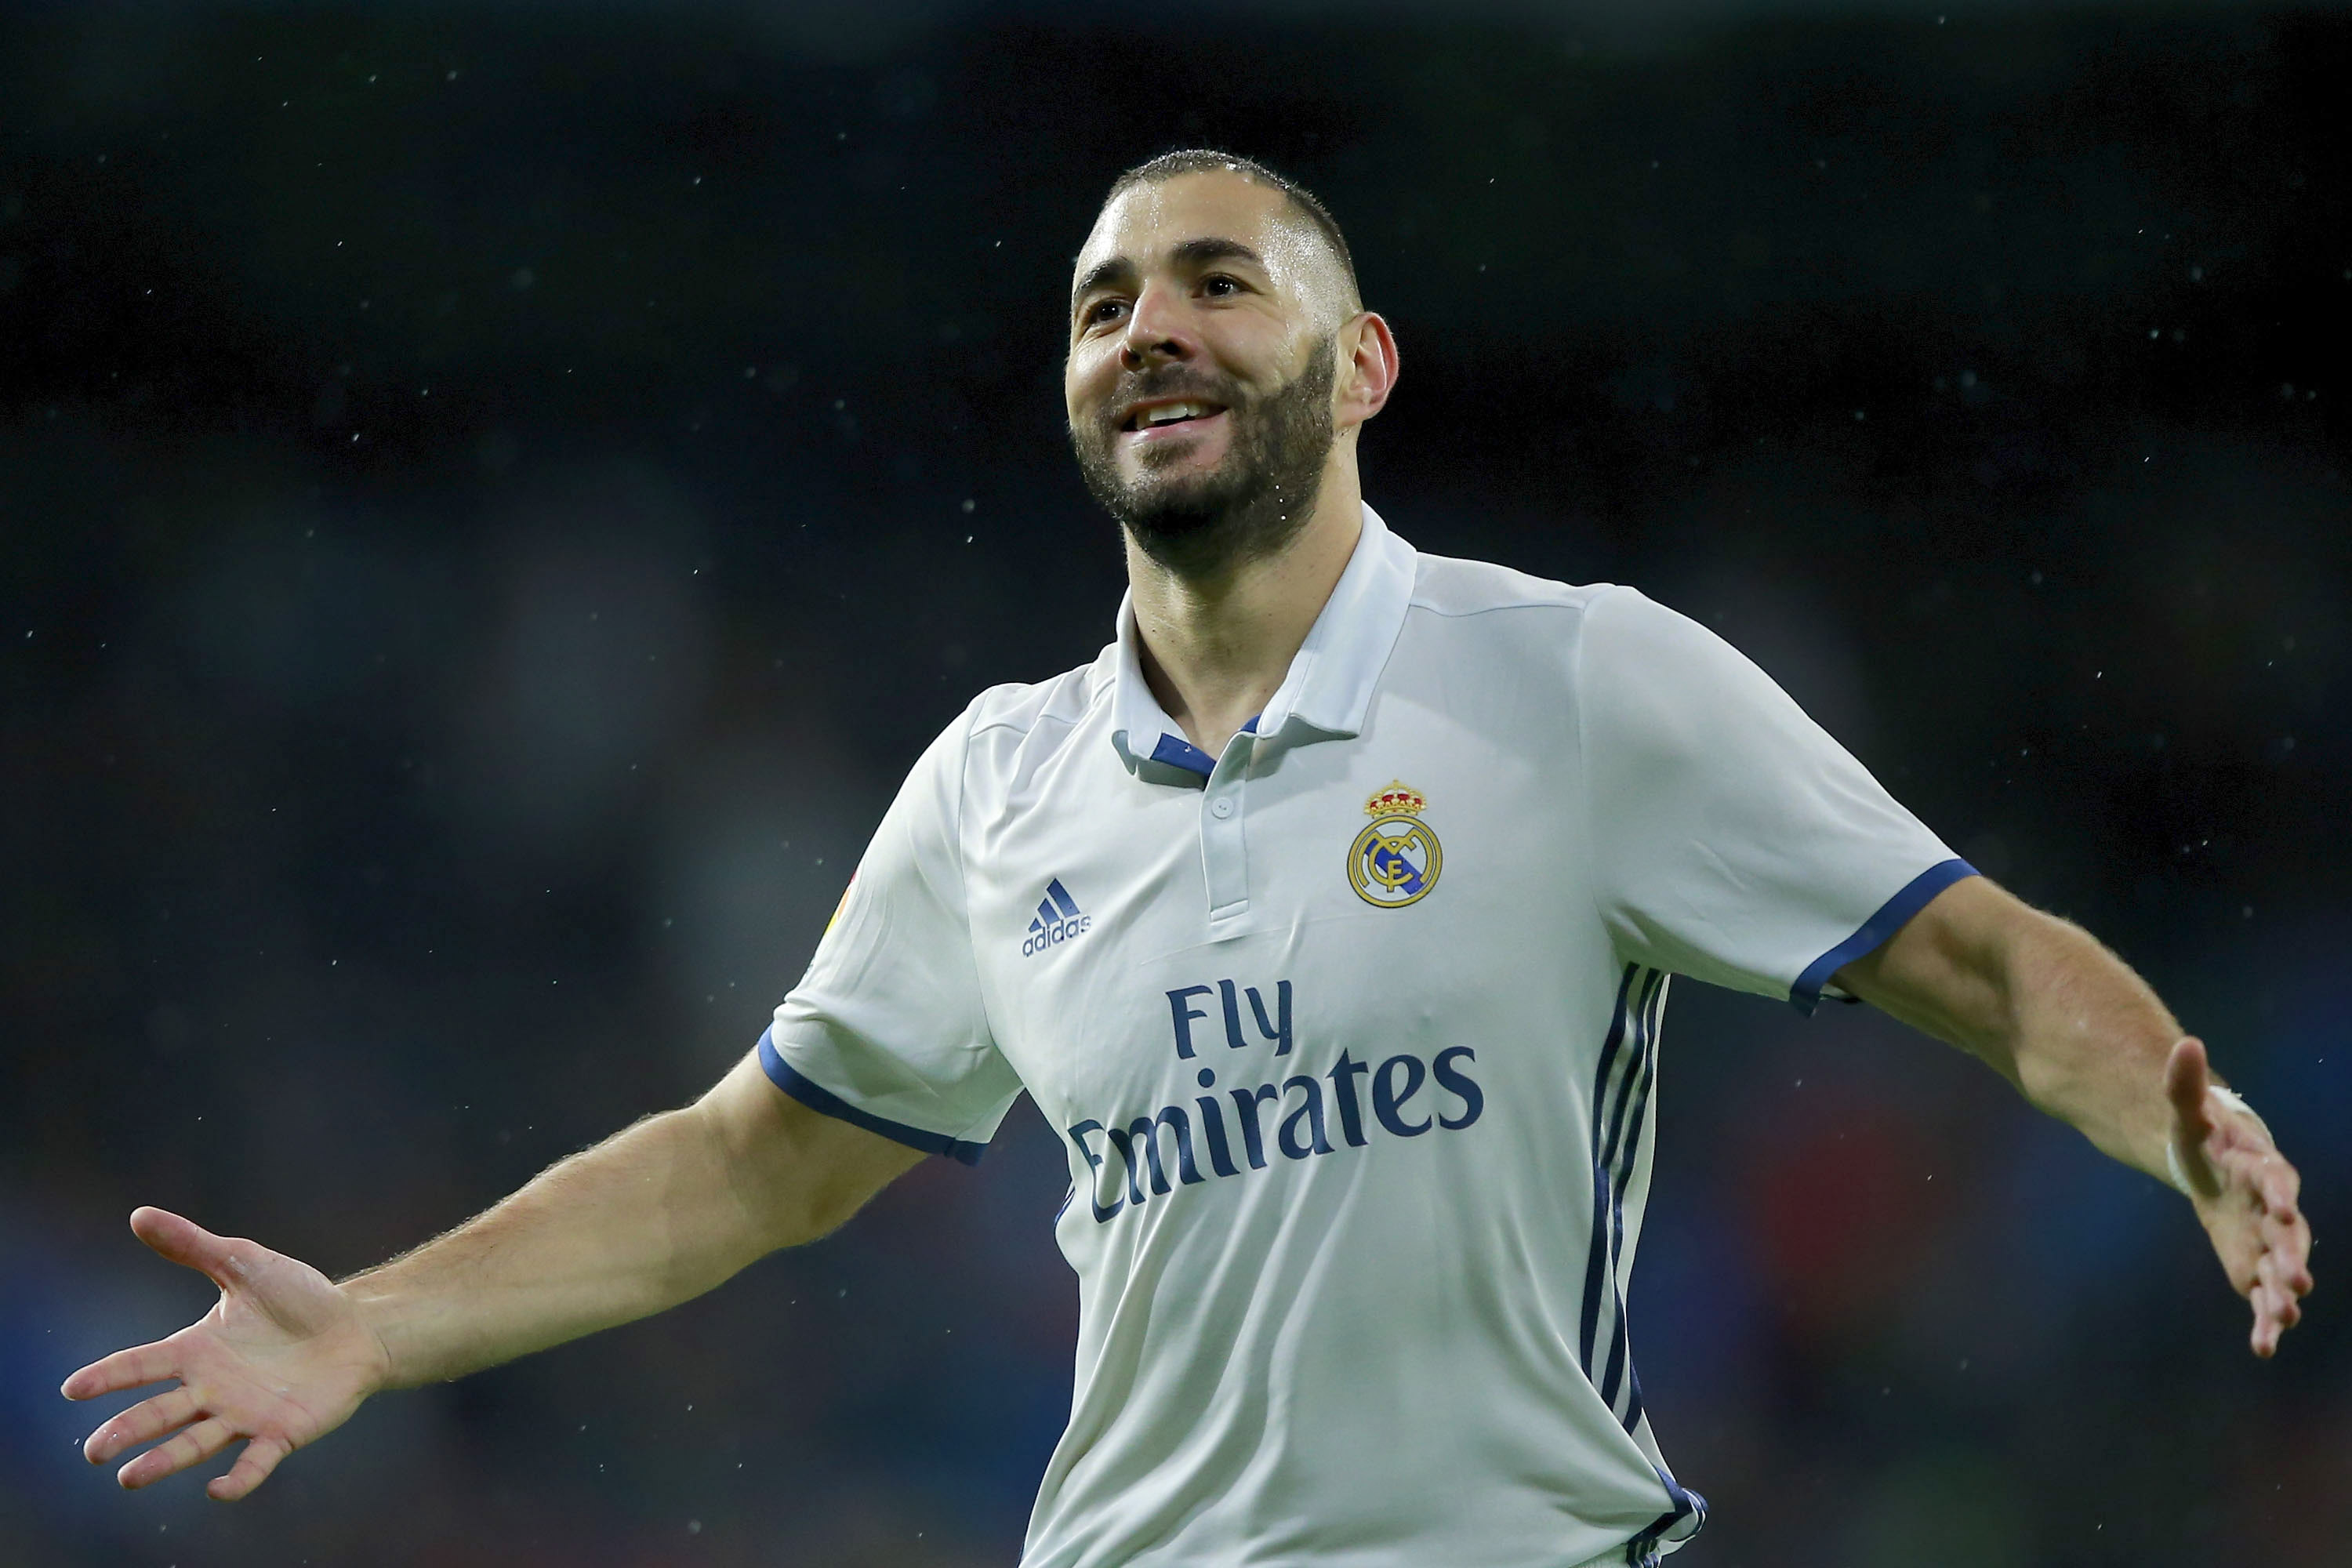 real madrid champions league live stream, real madrid live stream, real madrid vivo stream, real madrid stream, real madrid watch free, live, real madrid channel today, real madrid live